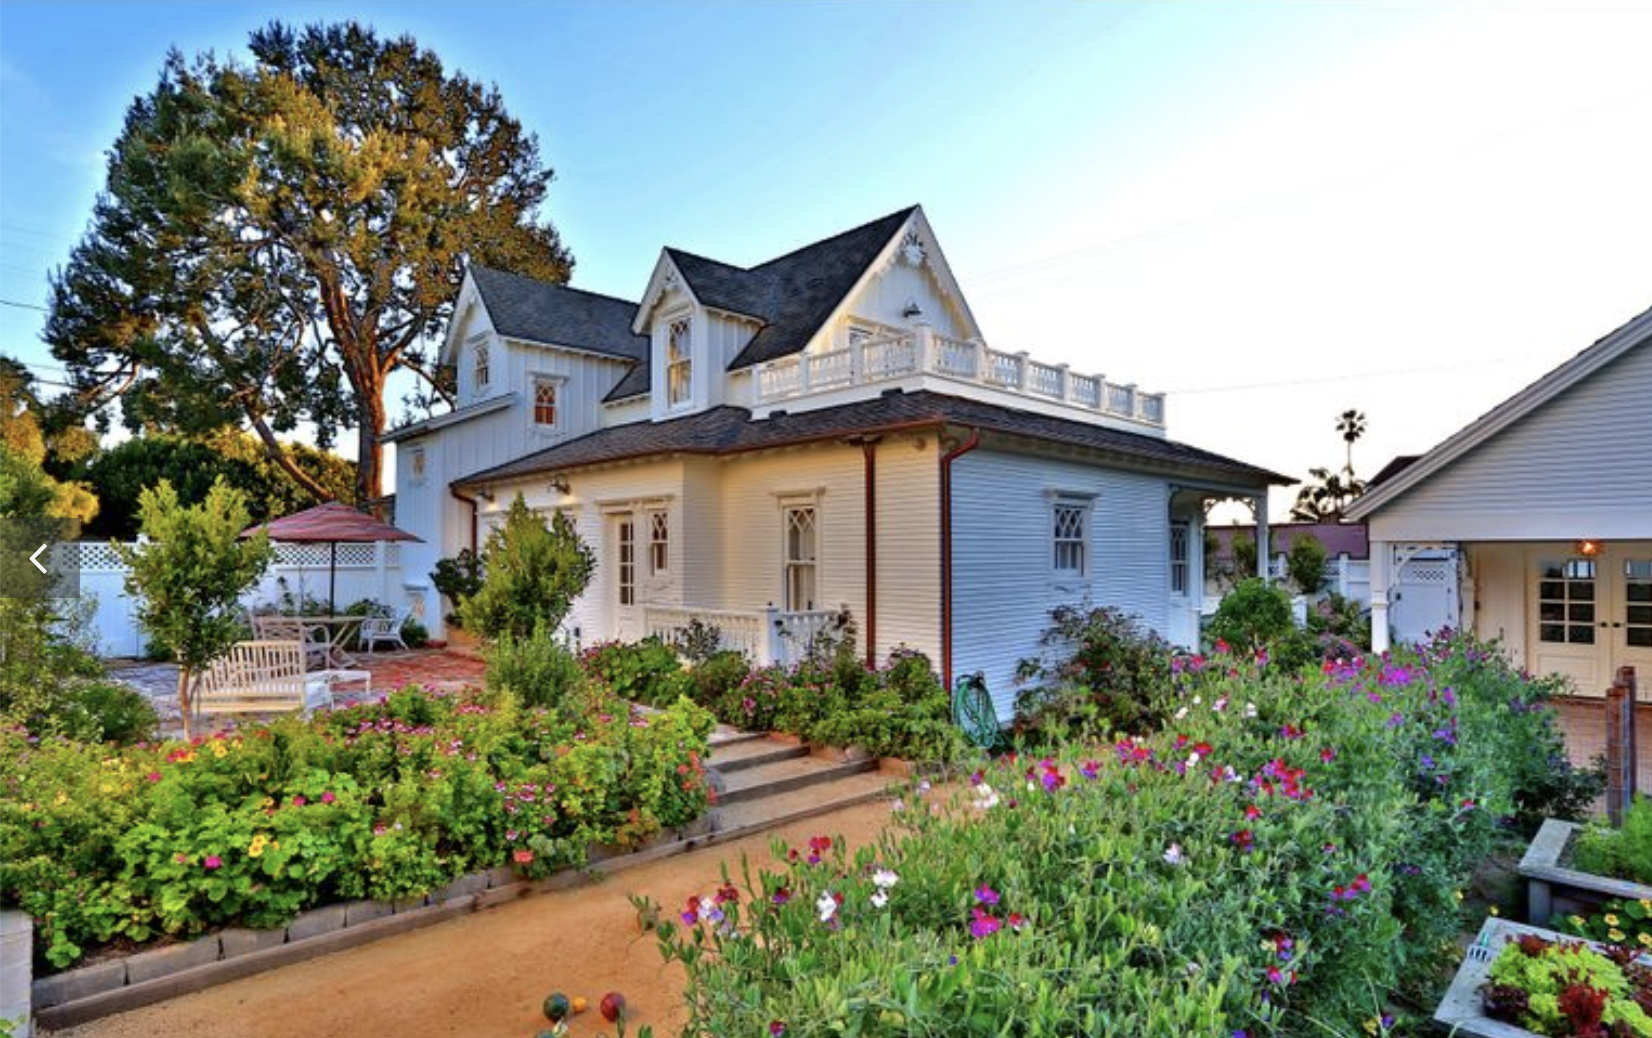 A RURAL VIBE IN MANHATTAN BEACH: - This Napa farmhouse-style home, which takes its cues from 19th-century floor plans, sits on a corner lot in the Manhattan Beach Tree Section. White bead board brings a rural tone to the interiors as does the country kitchen's butcher-block counters and farmhouse sink.